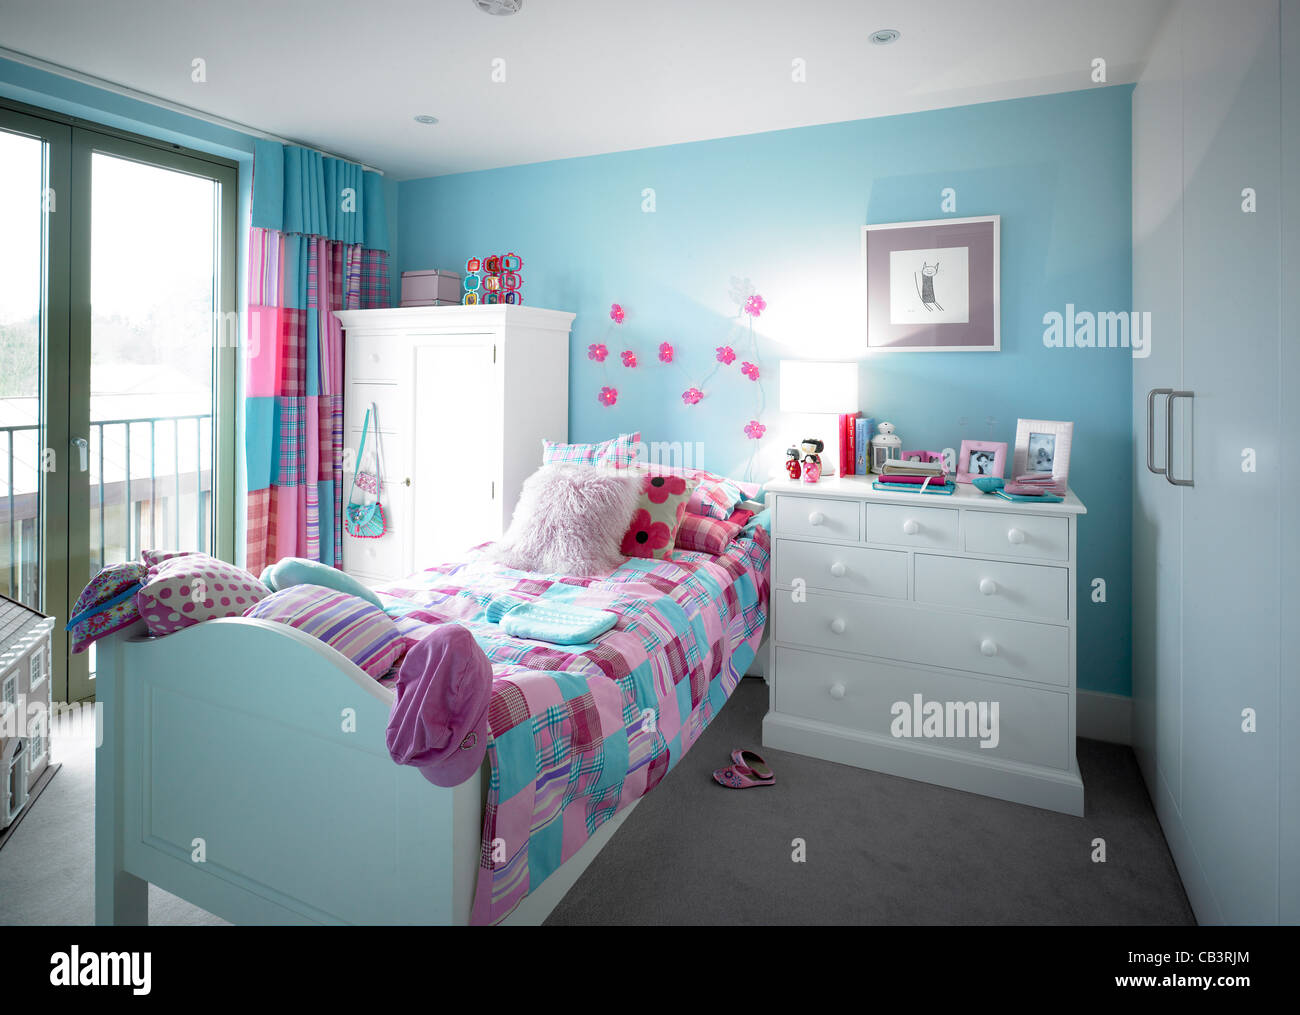 blue and pink girls bedroom Stock Photo: 41266364 - Alamy